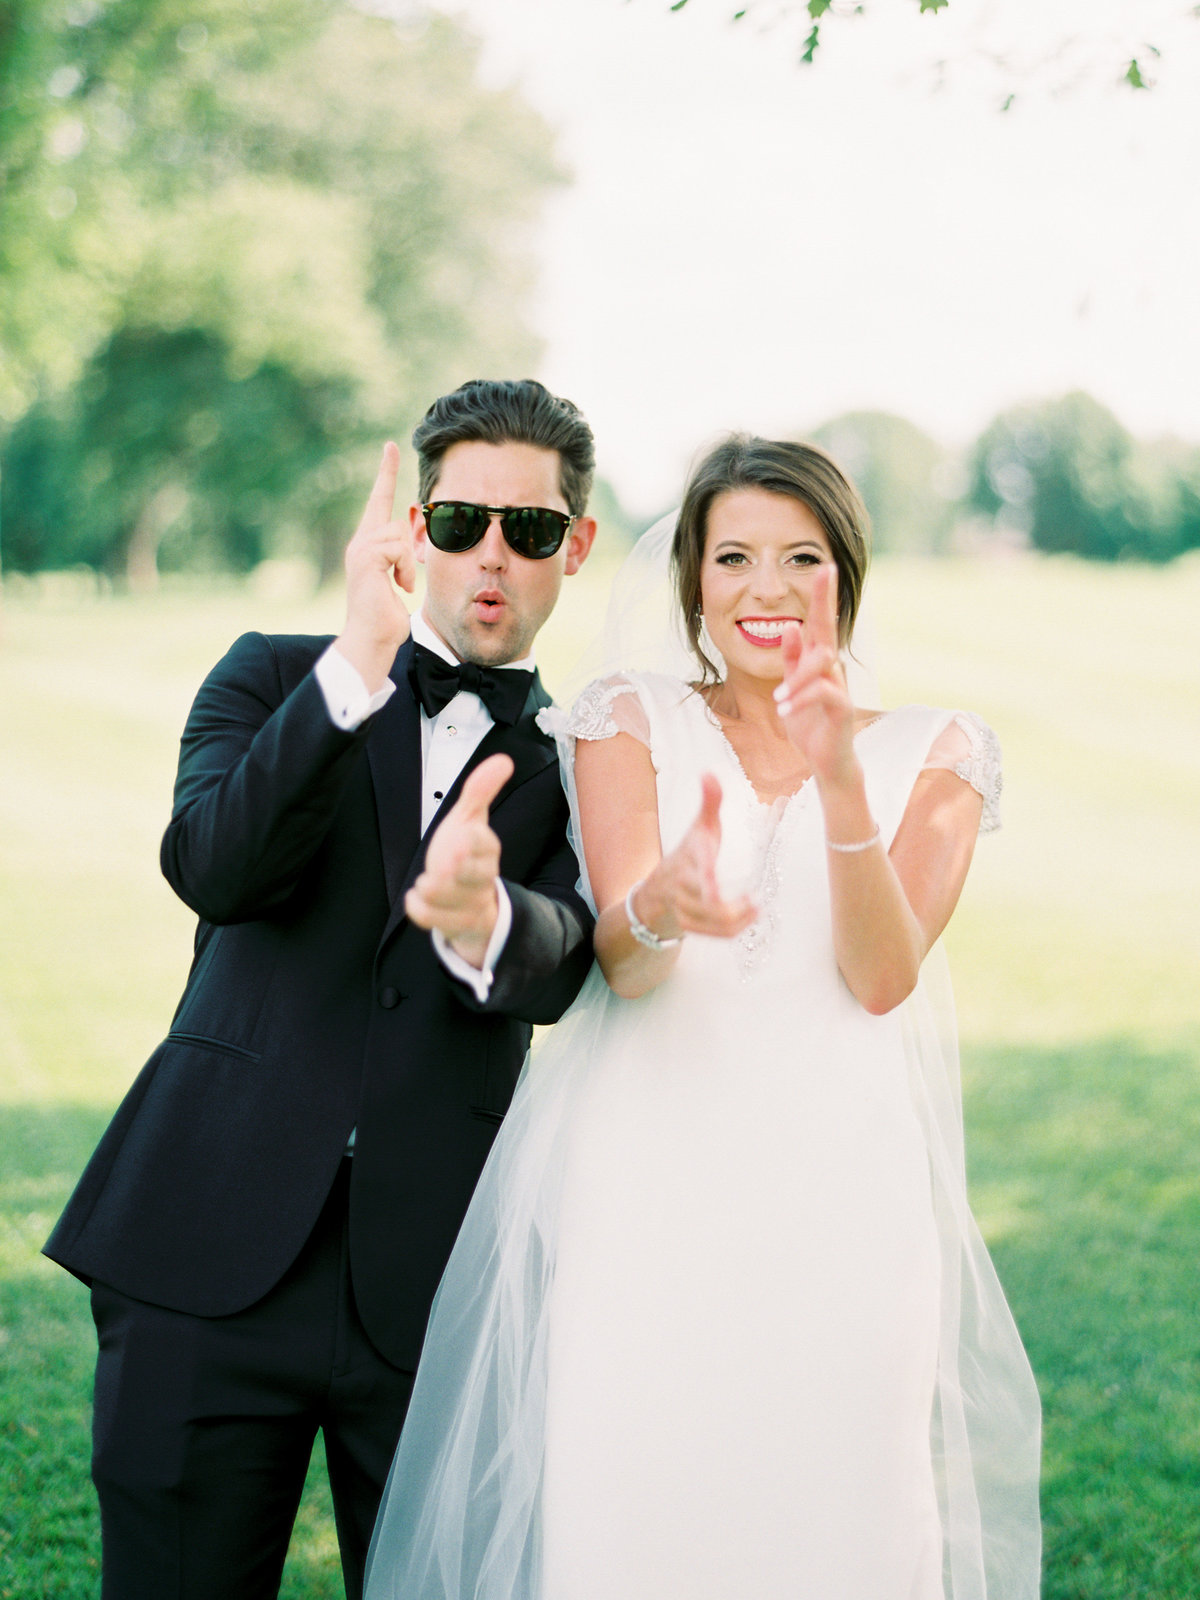 sarah-nichole-photography-weddings-41